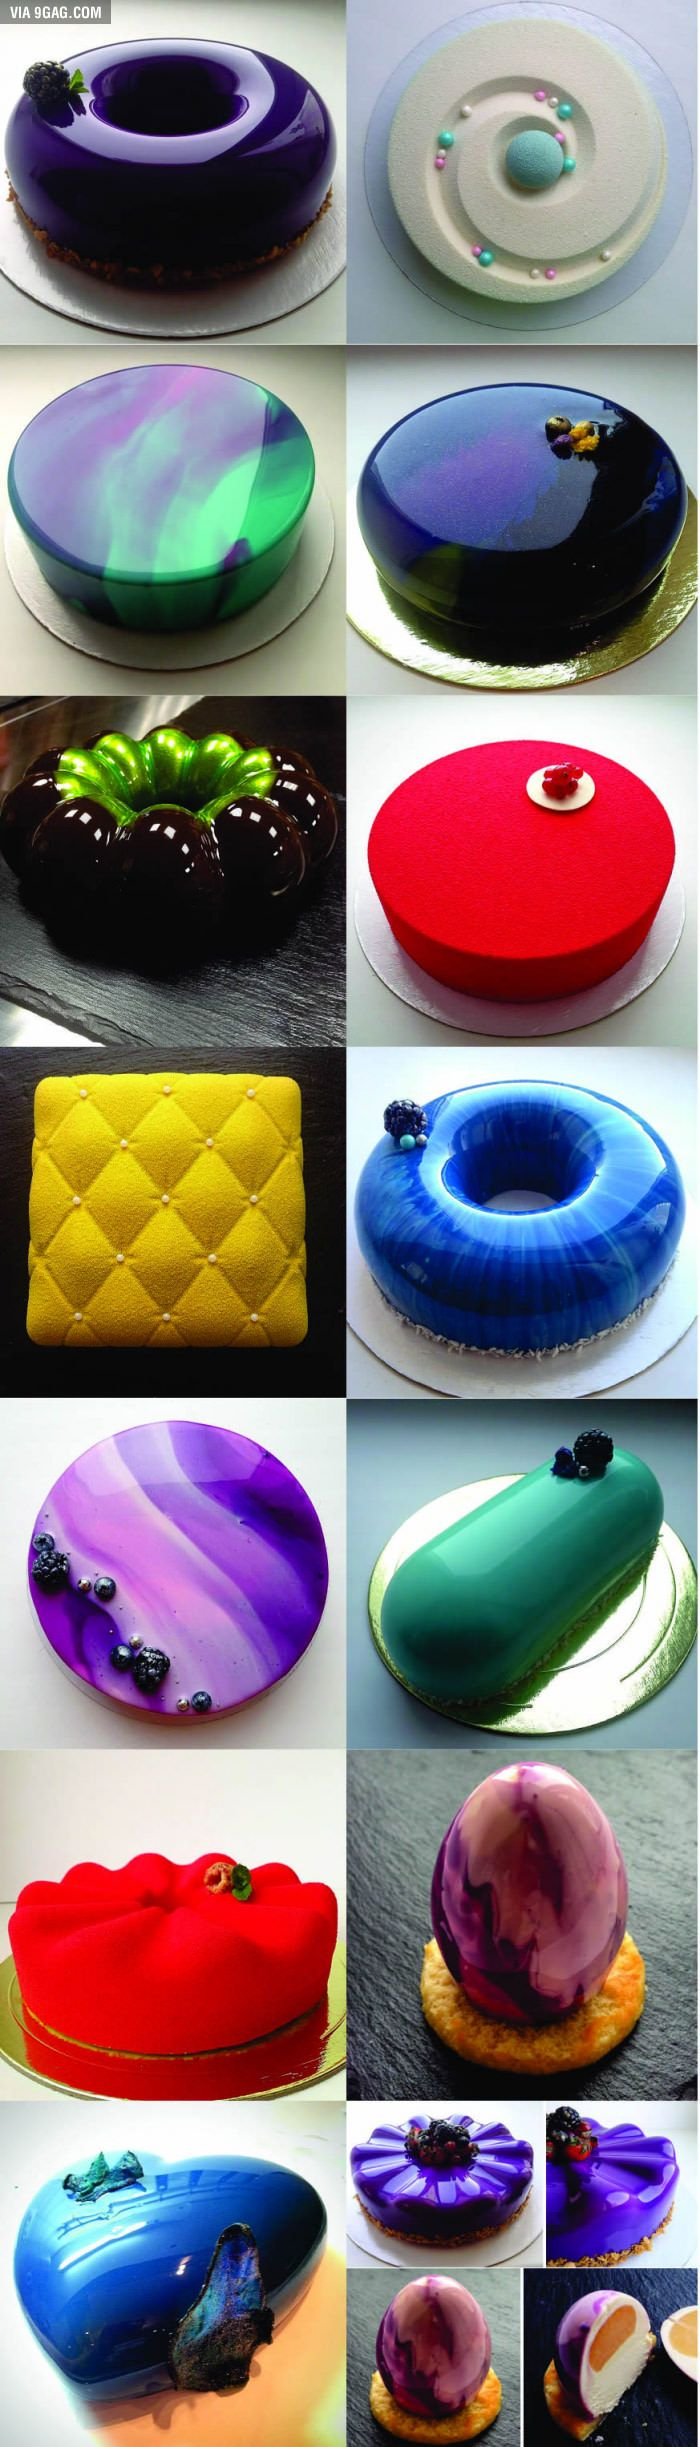 Glass-like cakes... Does anyone know where to find the recipe? - 9GAG